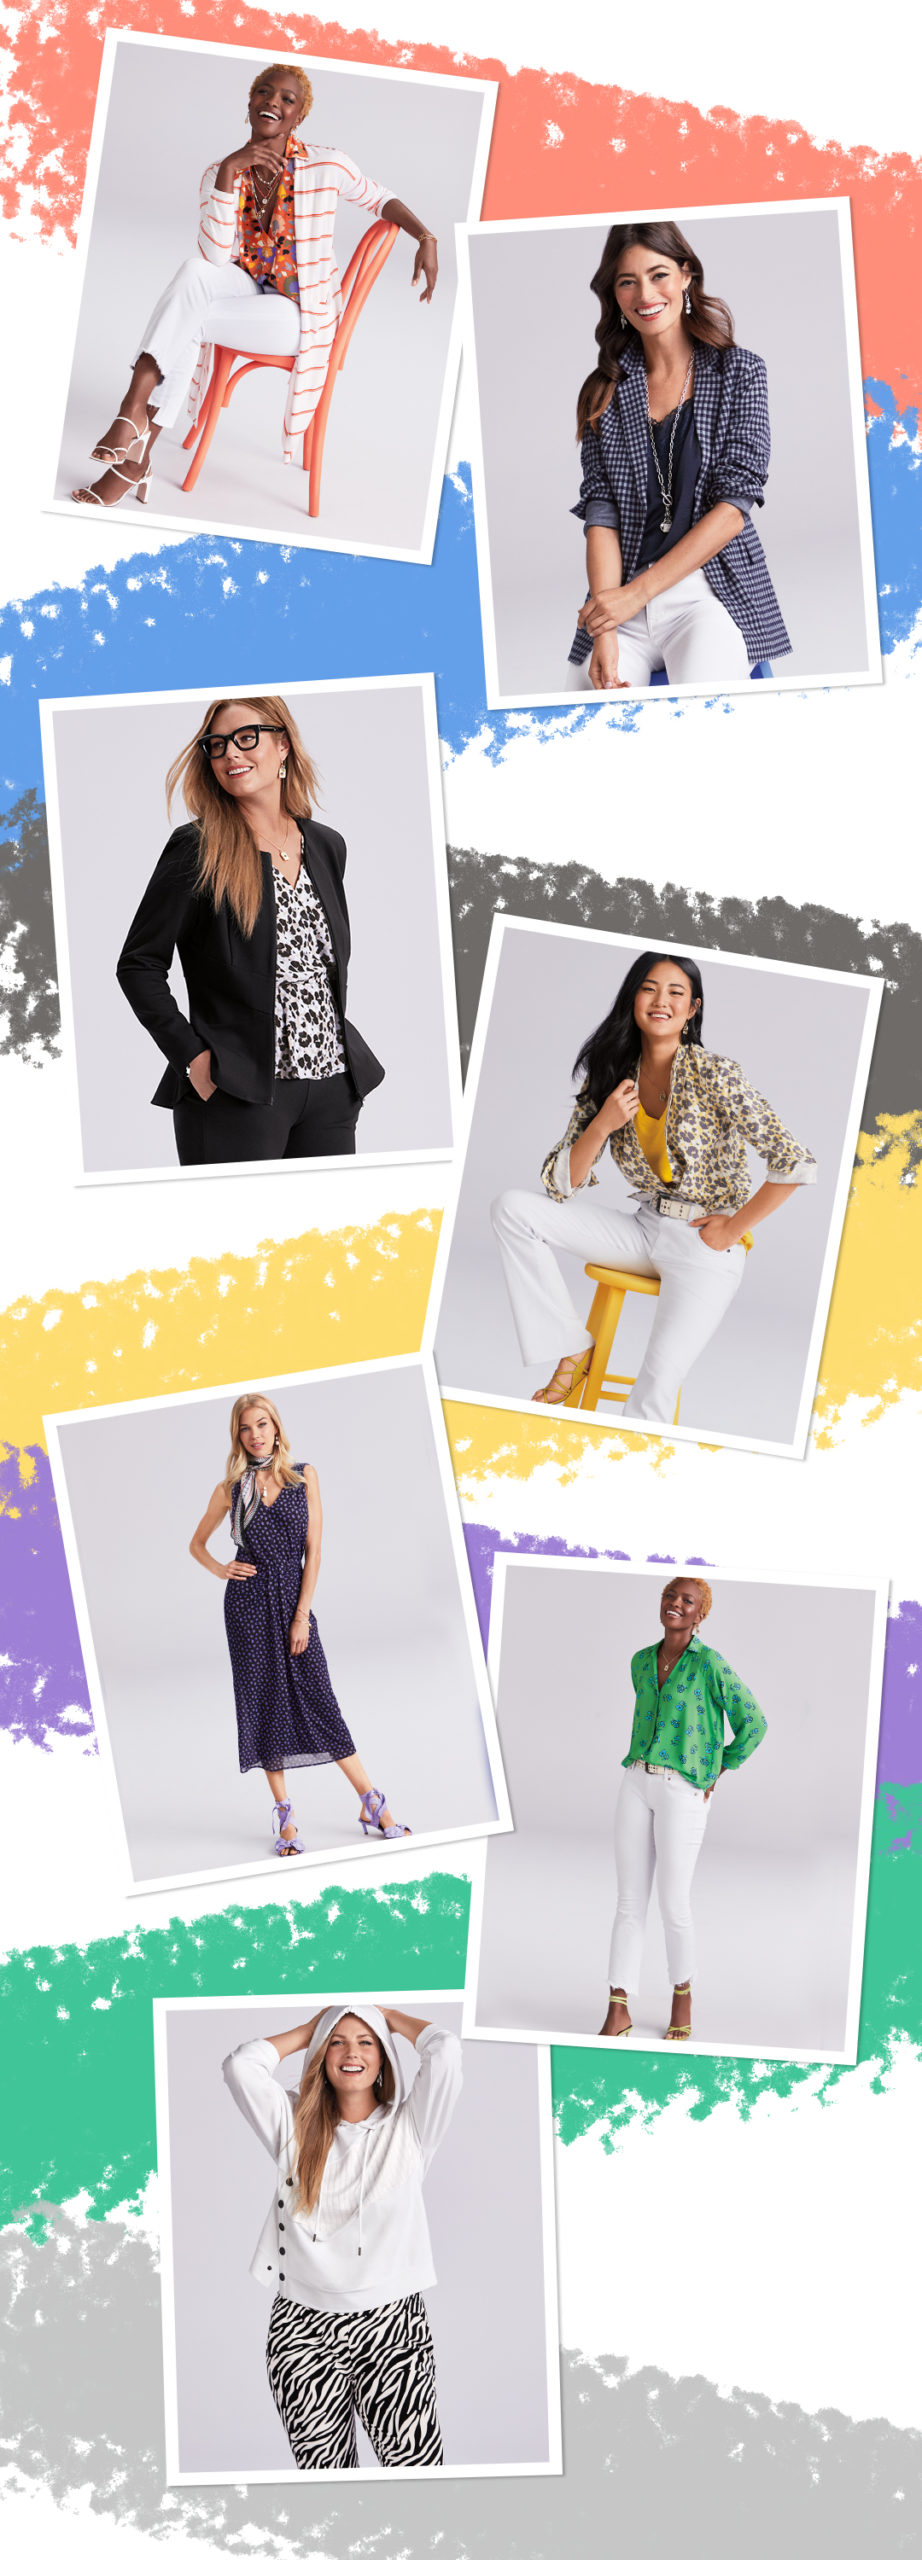 spring 7 collection inspiration - Cabi Spring 7 Collection